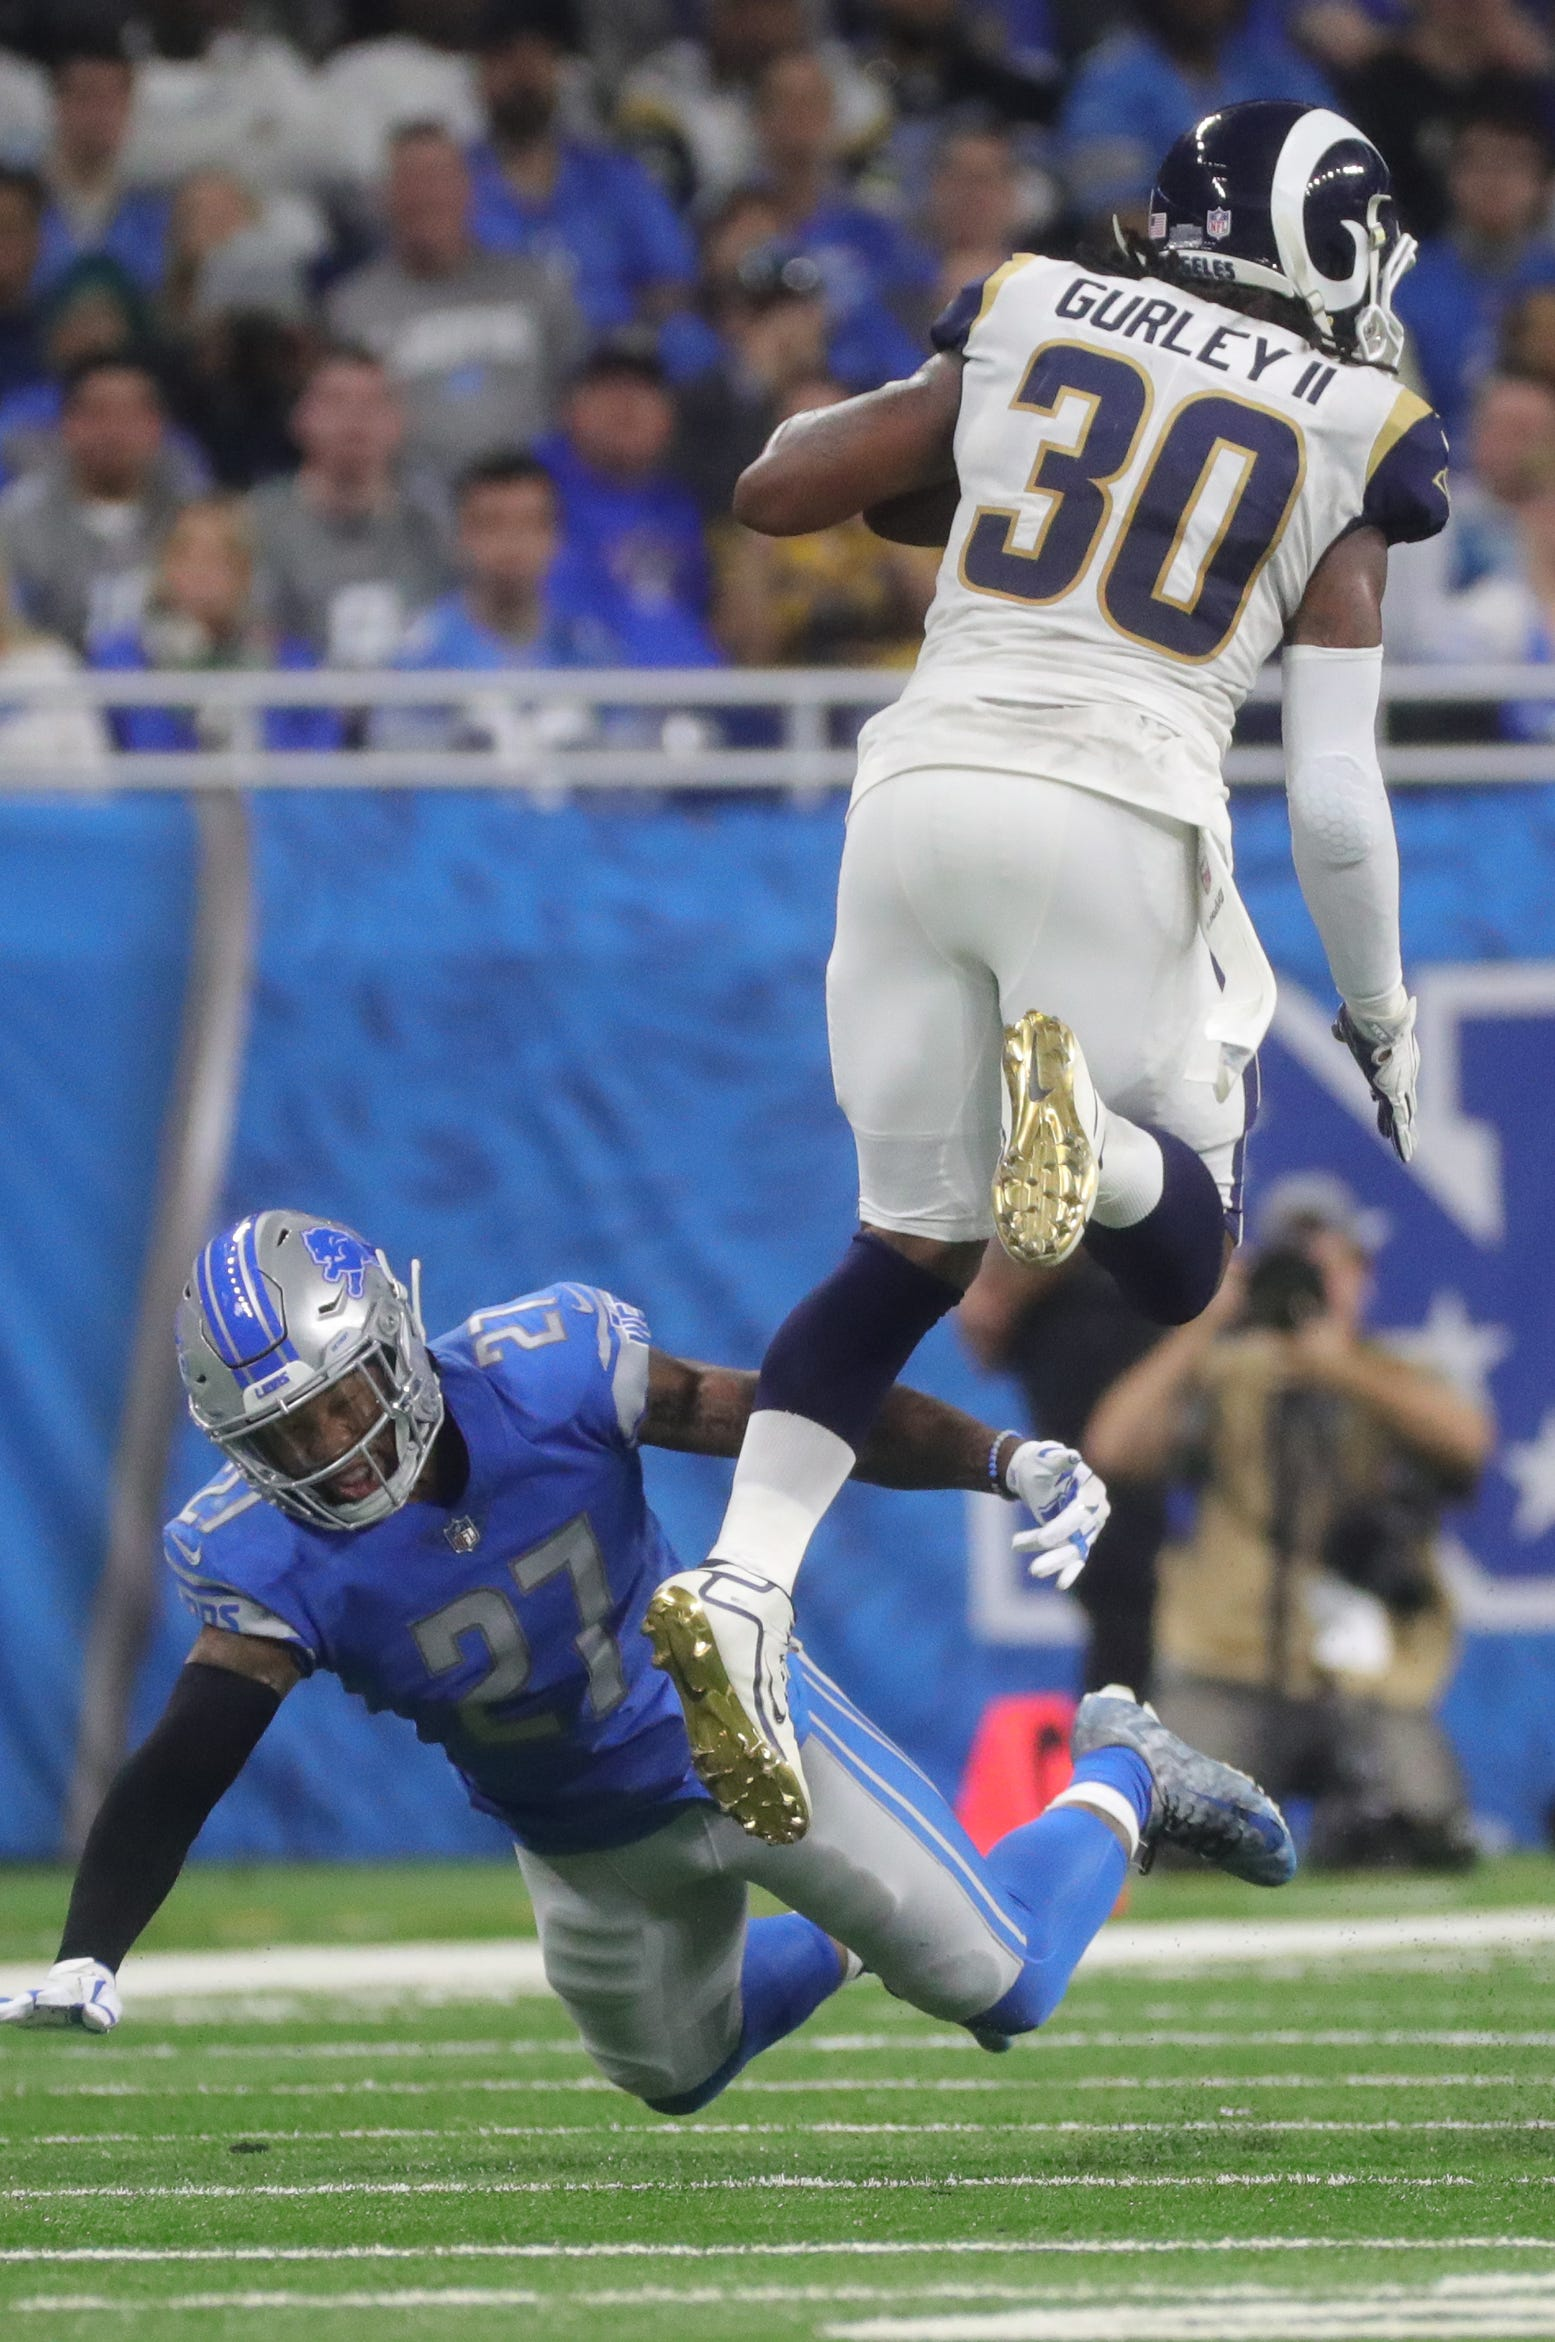 Lions safety Glover Quin misses the tackle on Rams running back Todd Gurley II during the first half on Sunday, Dec. 2, 2018, at Ford Field.